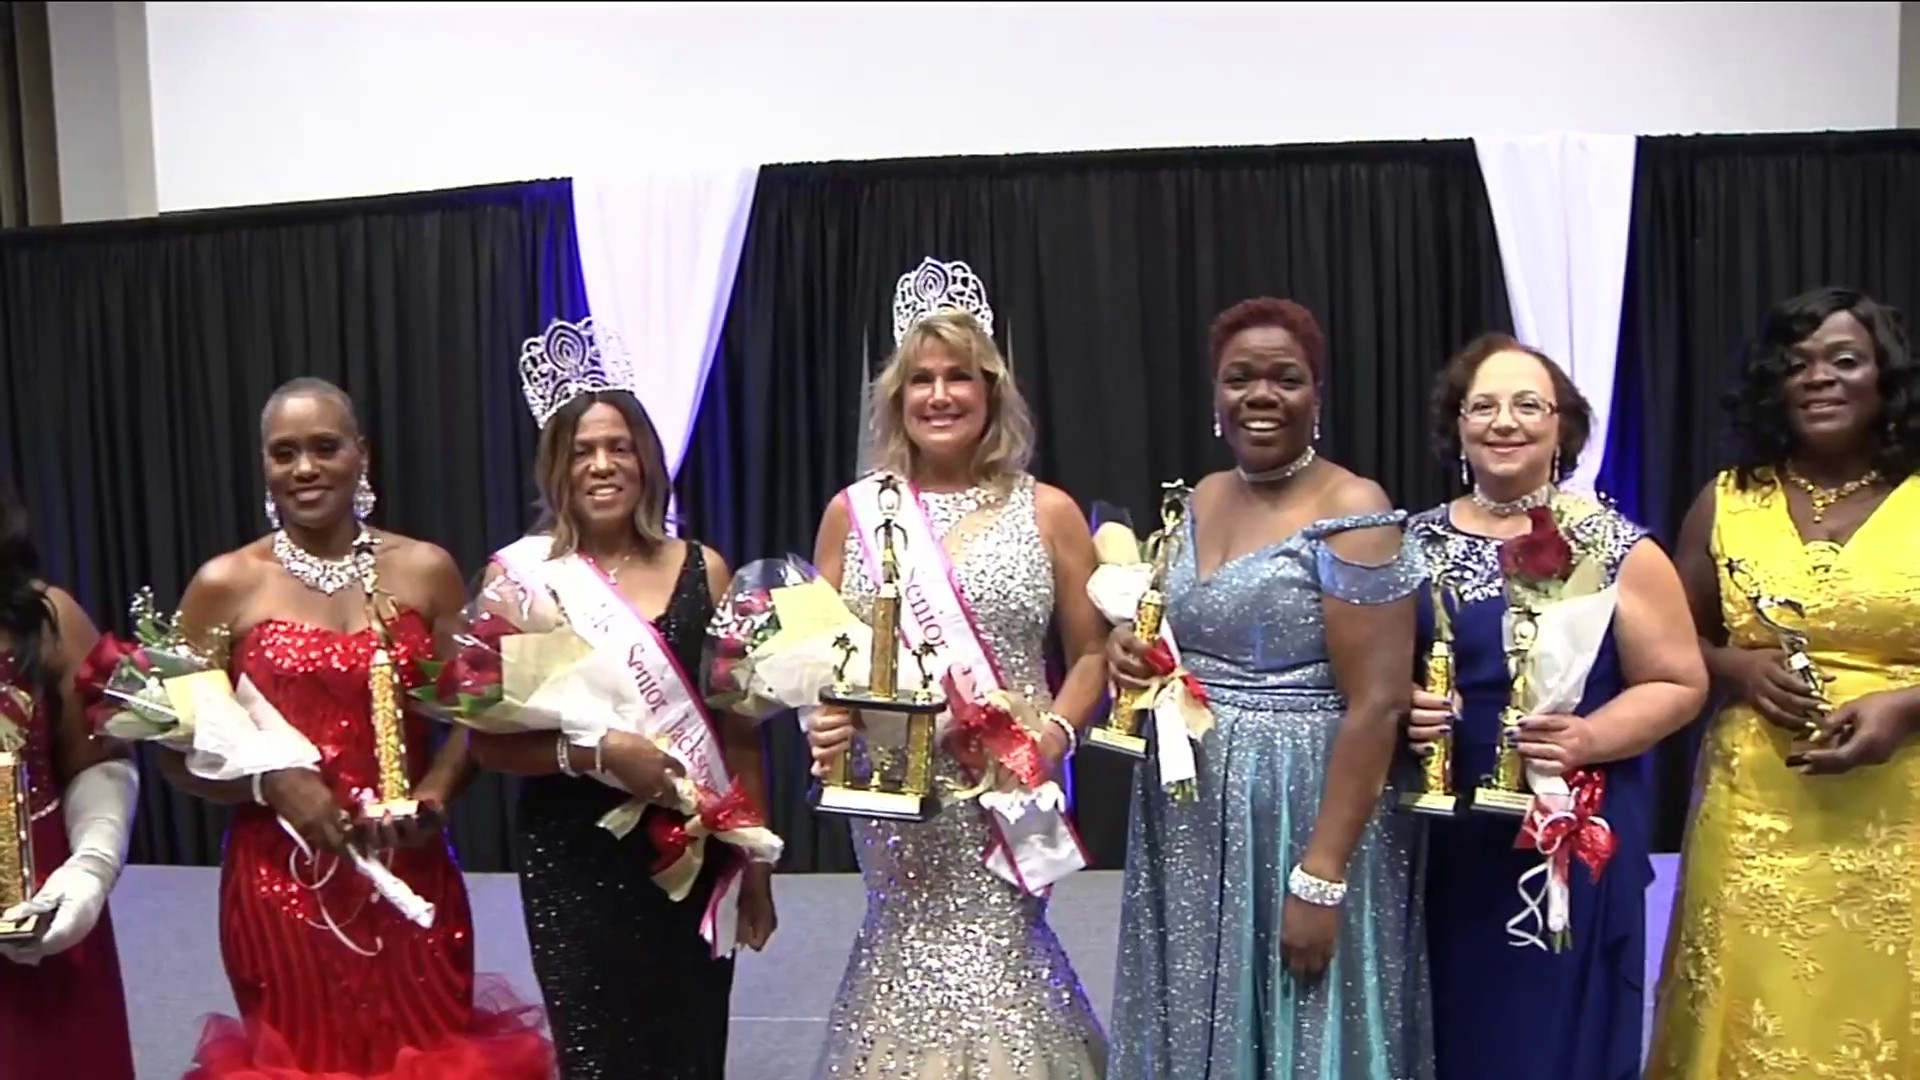 Miss Senior Jacksonville Was Crowned At The University Of North Florida